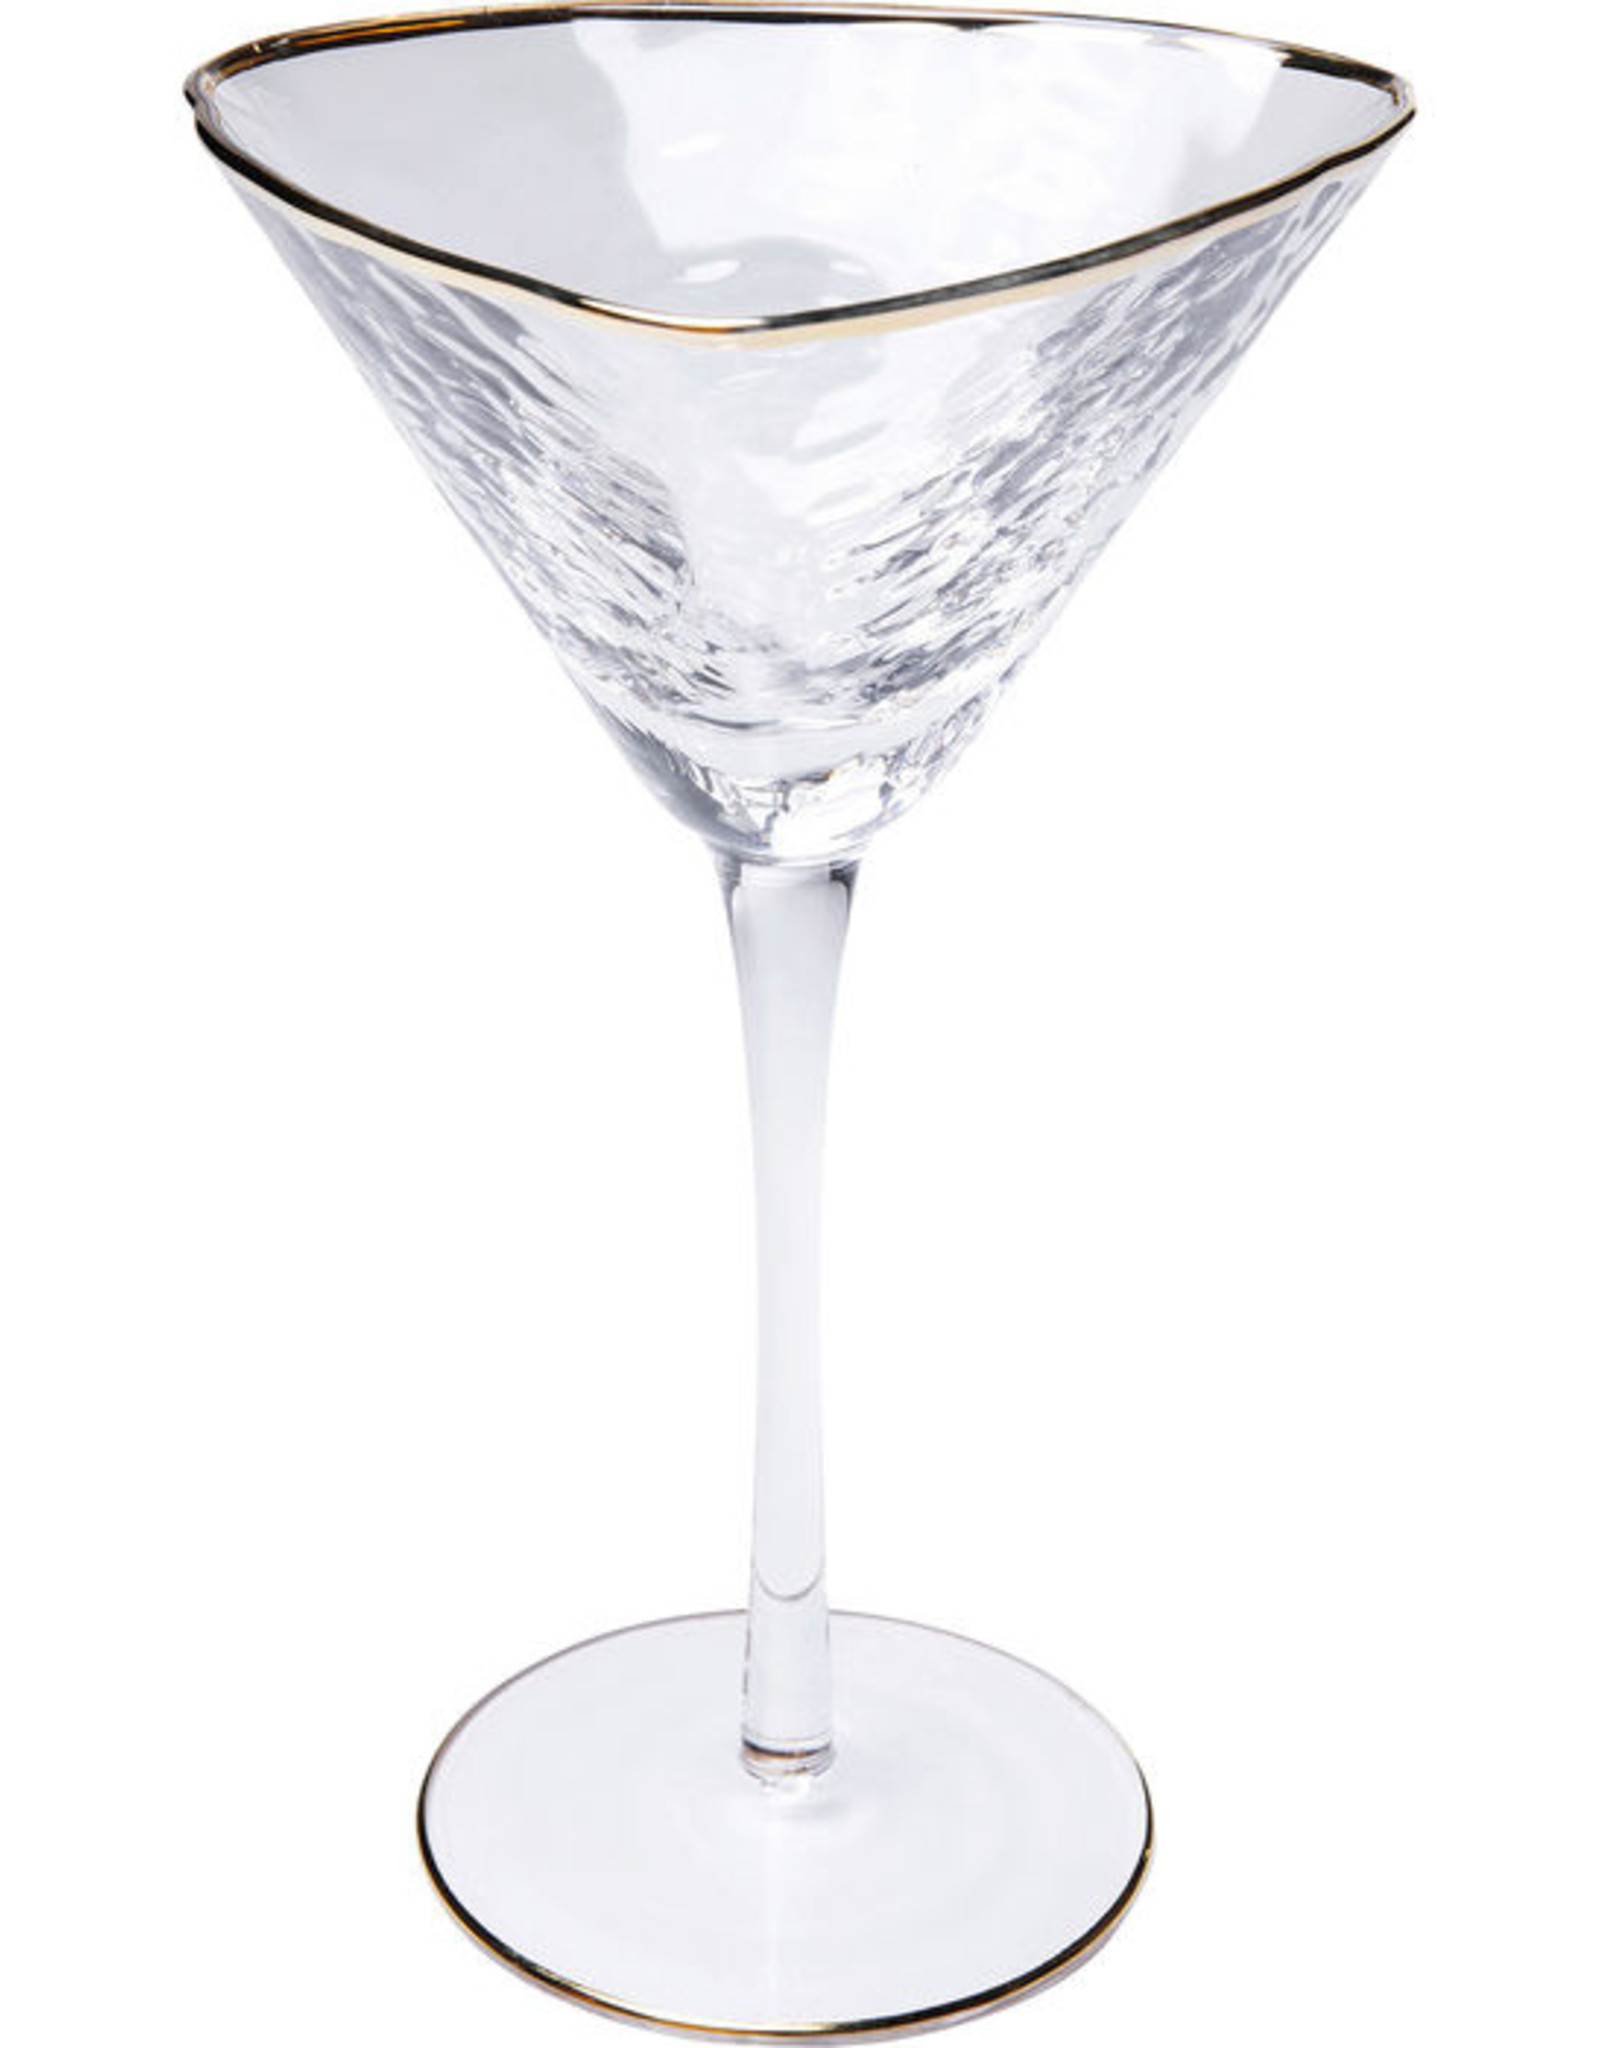 KARE DESIGN Cocktail Glass Hommage